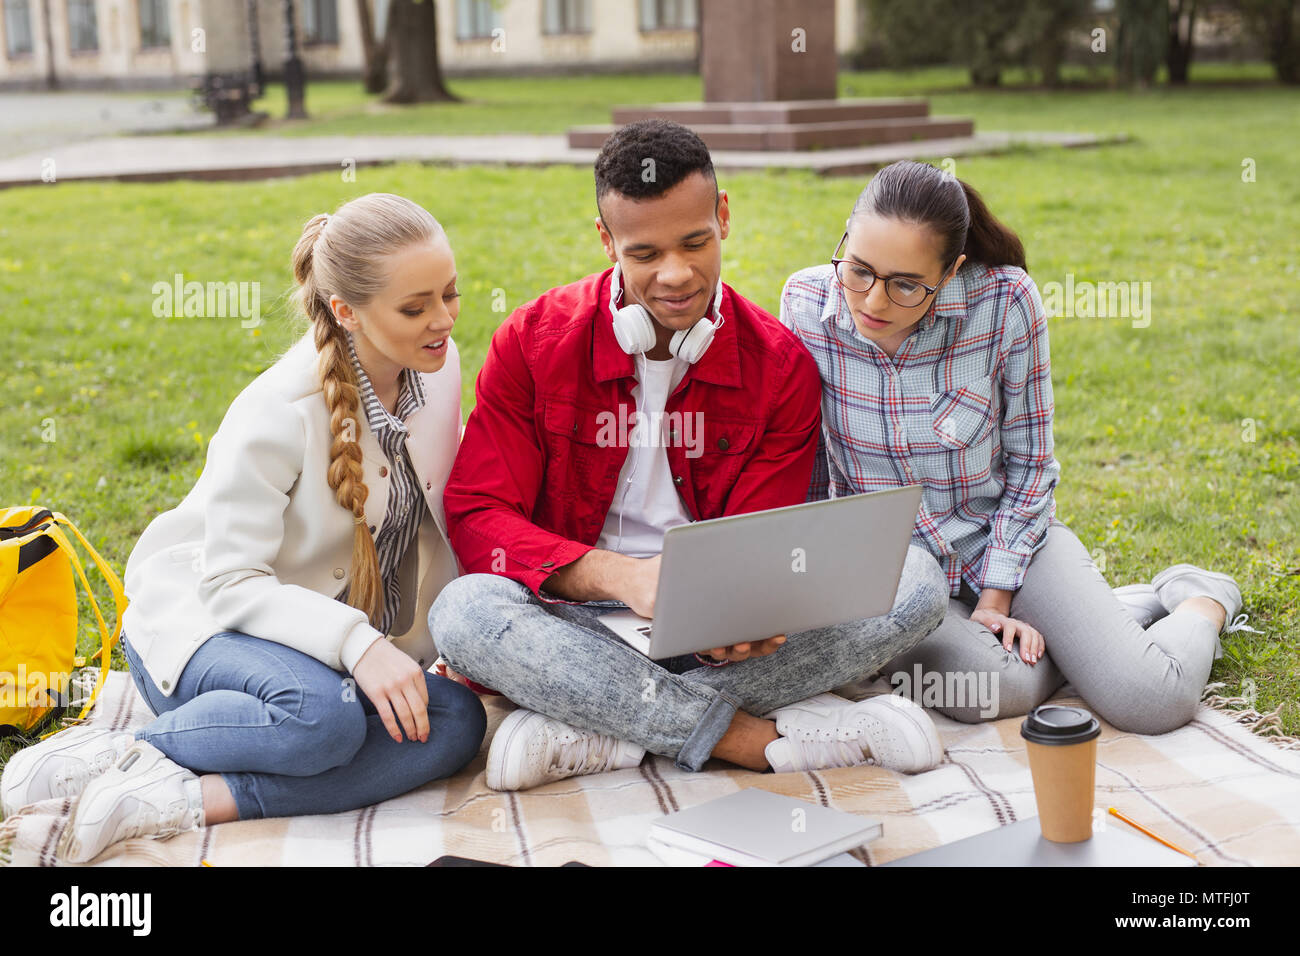 Master degree students watching memorable photos on laptop - Stock Image